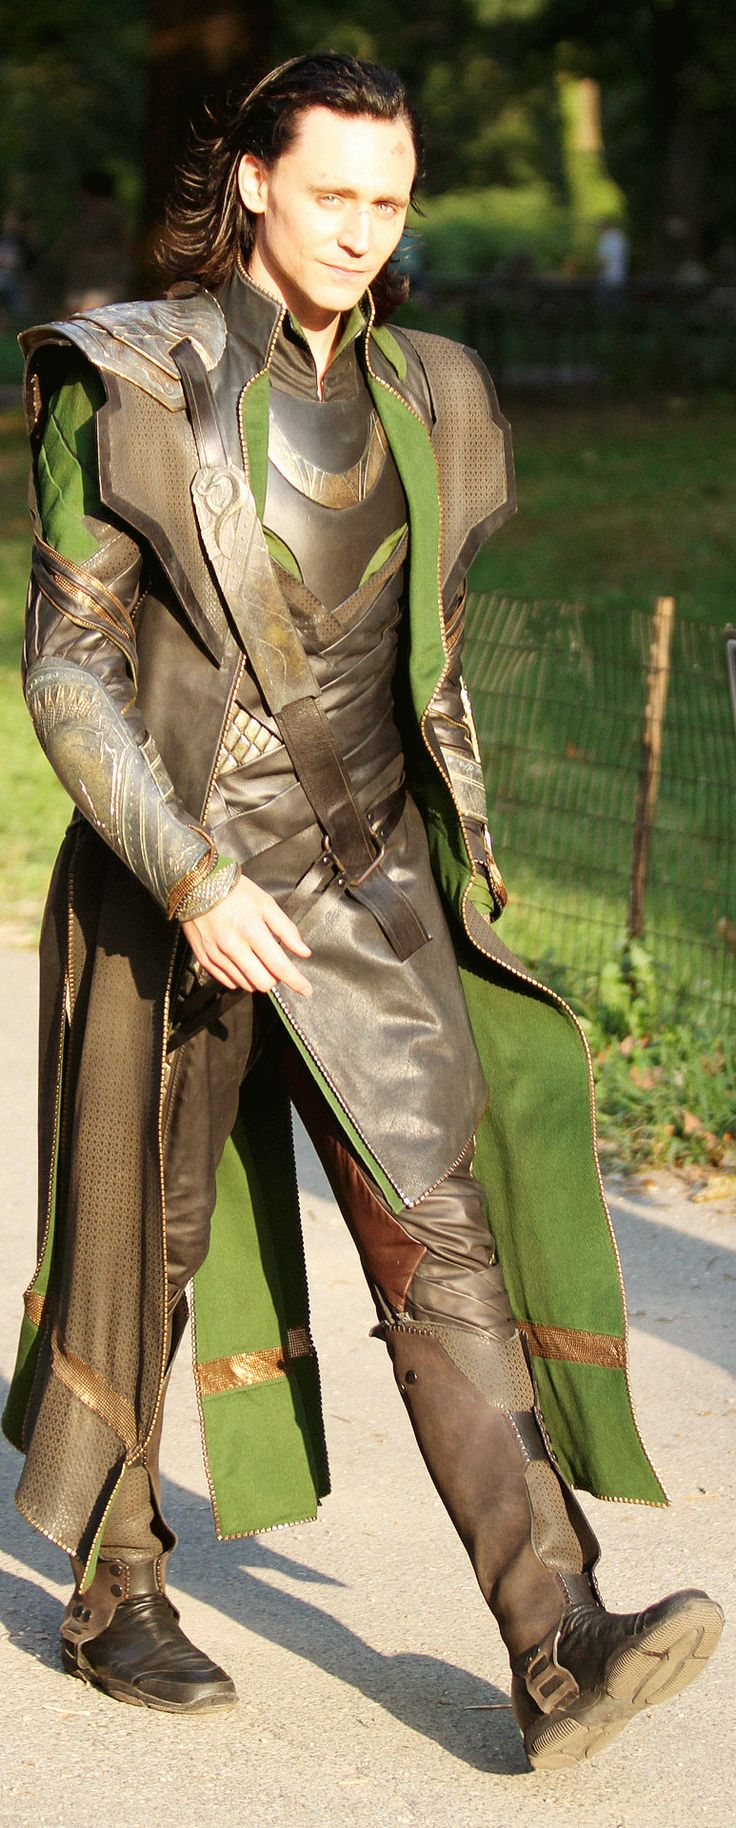 Tom Hiddleston on the set of The Avengers (2011) Yet another great shot of the costume in motion. look at the back of the right leg